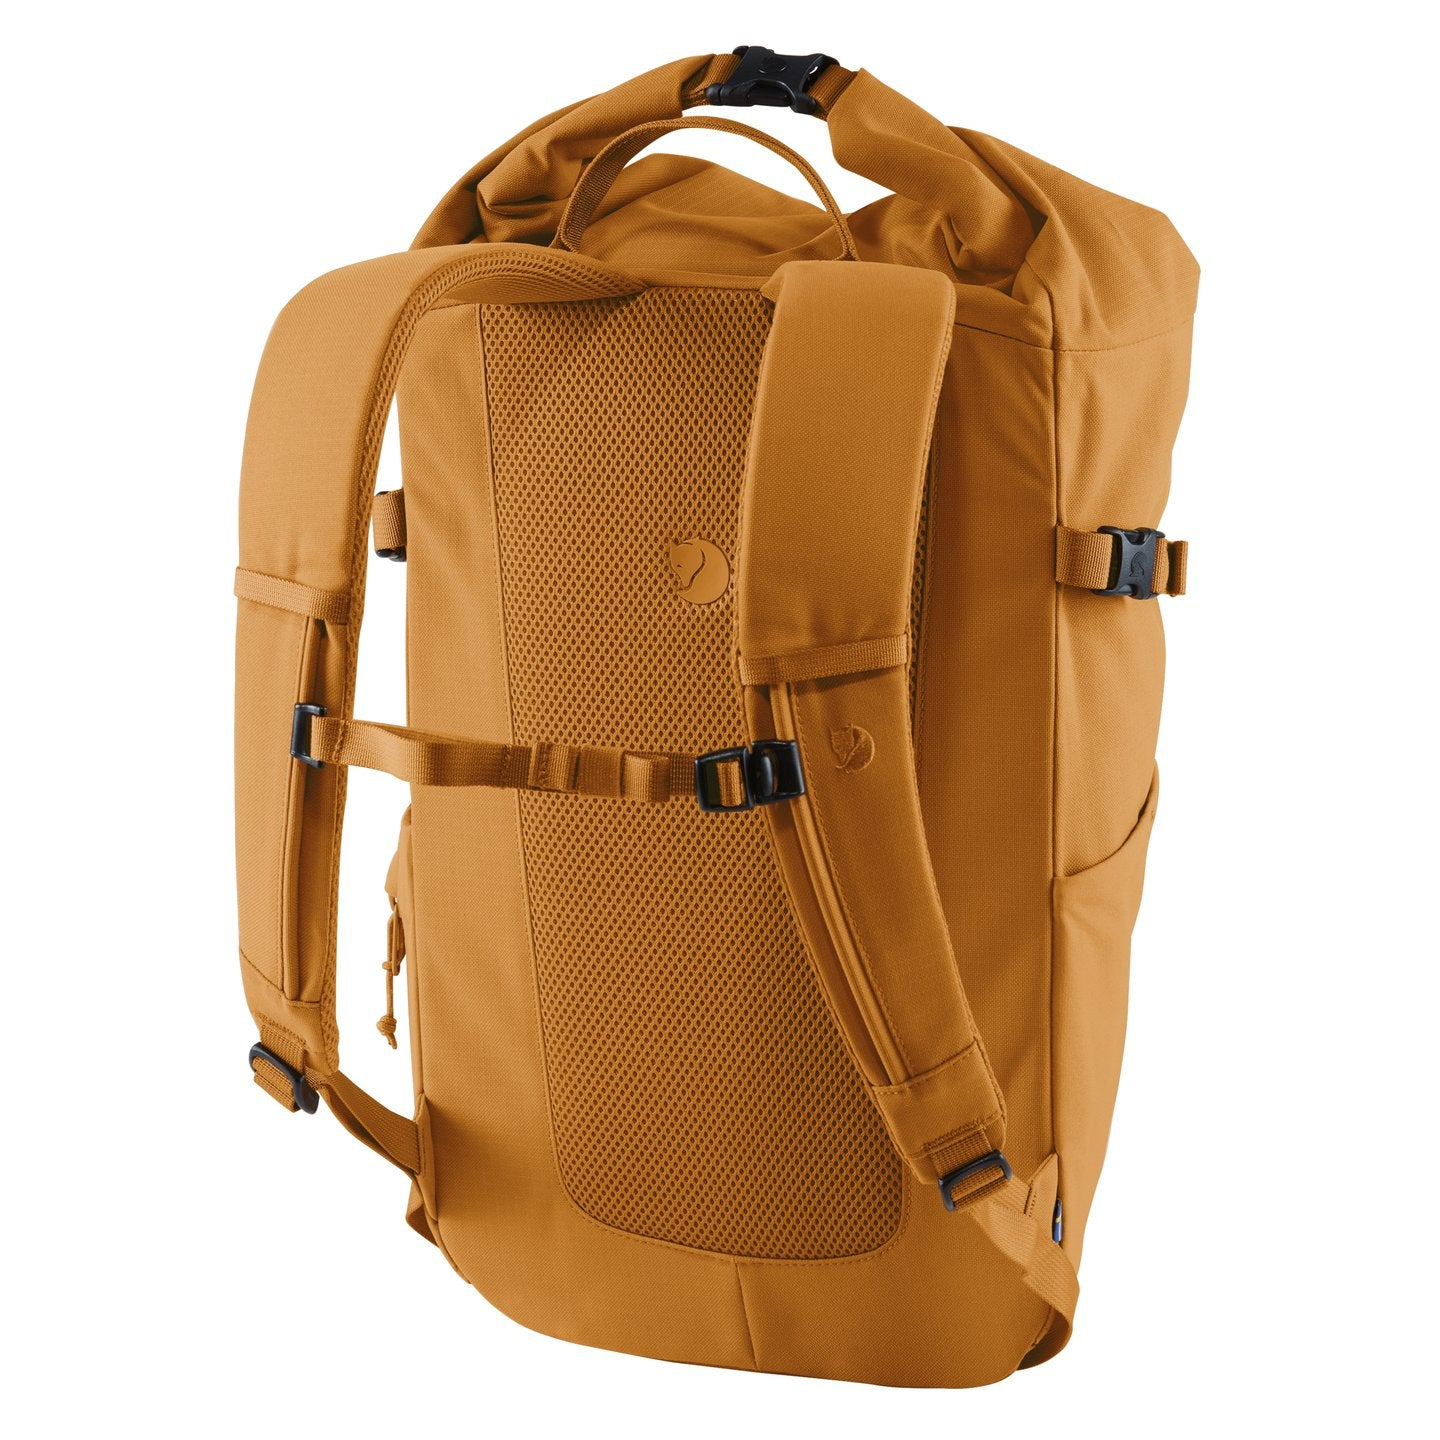 Fjallraven Ulvö Rolltop 23 - Red Gold - Find Your Feet Australia Hobart Launceston Tasmania